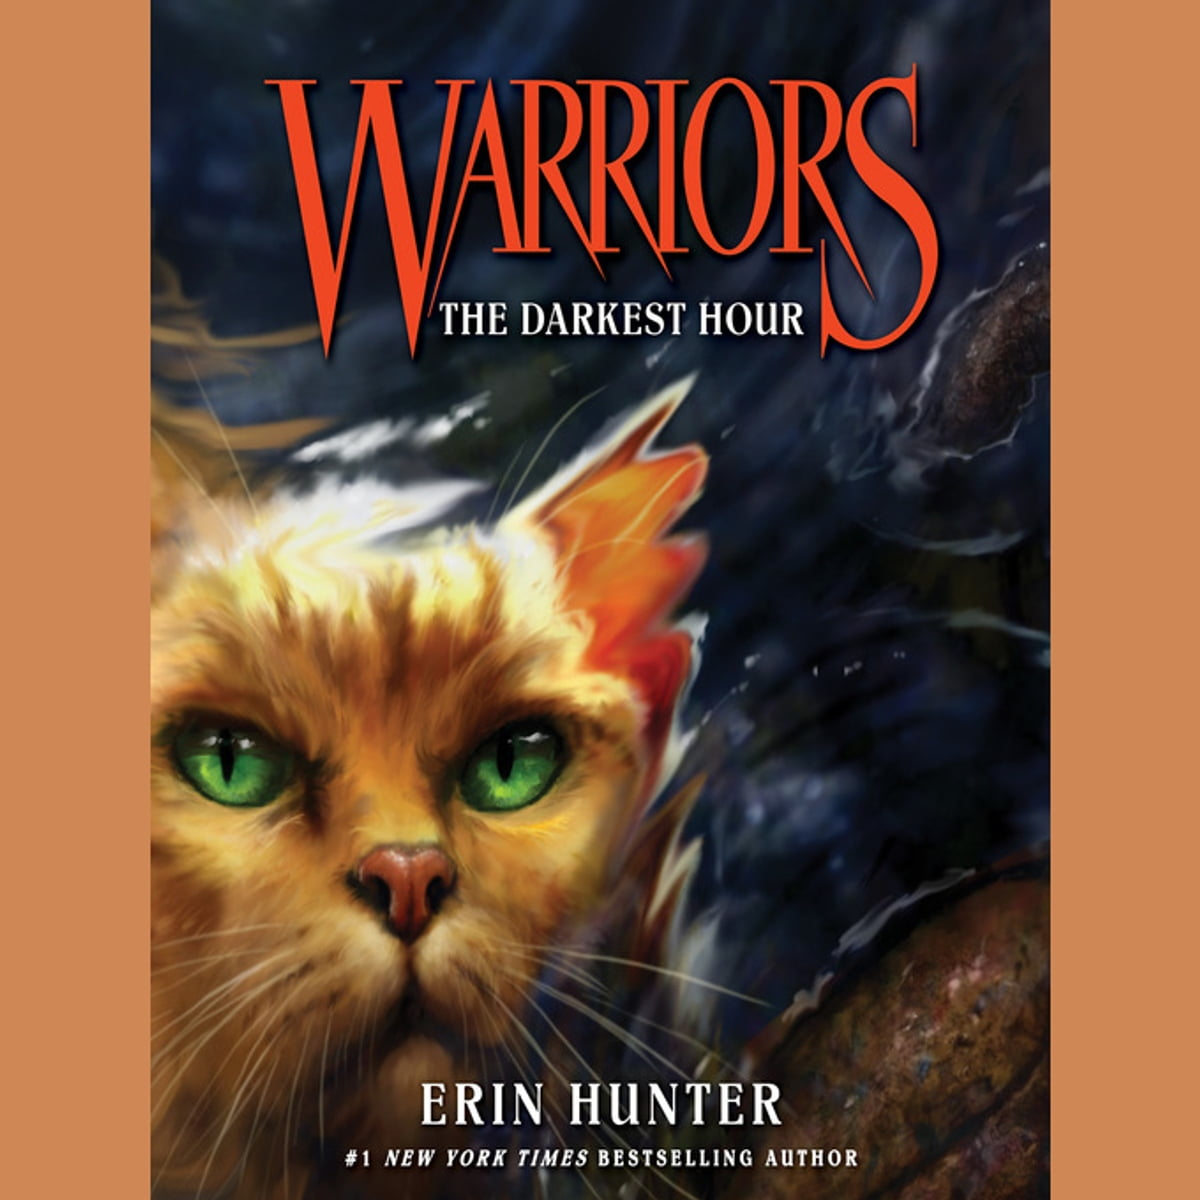 Warriors Into The Wild Online: Warriors #6: The Darkest Hour Audiobook By Erin Hunter